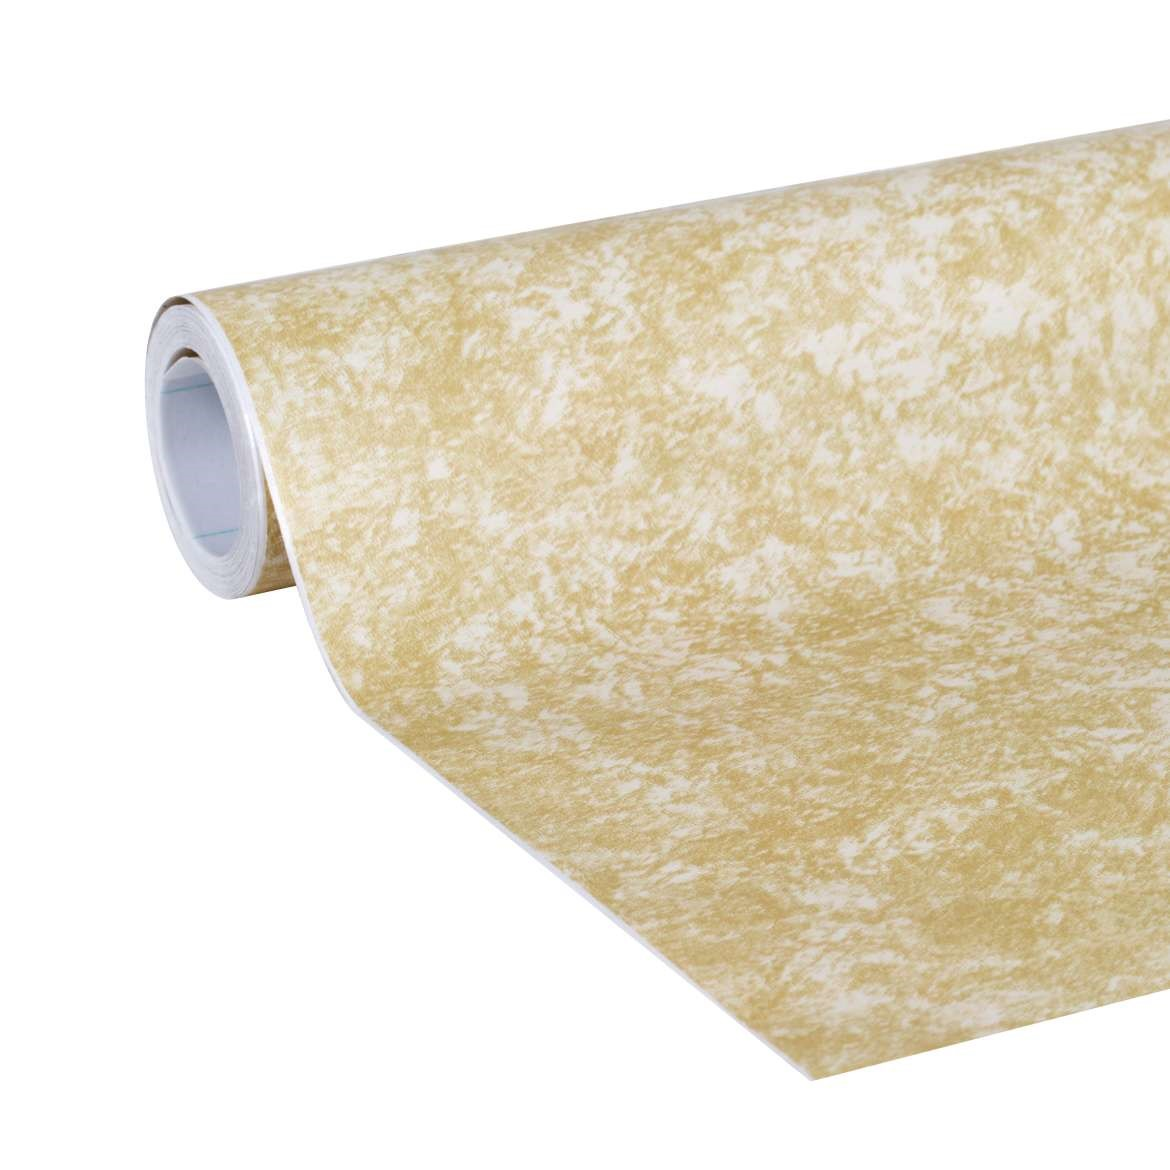 Duck Brand Peel & Stick Adhesive Laminate - Pearl Marble, 20 in. x 15 ft.